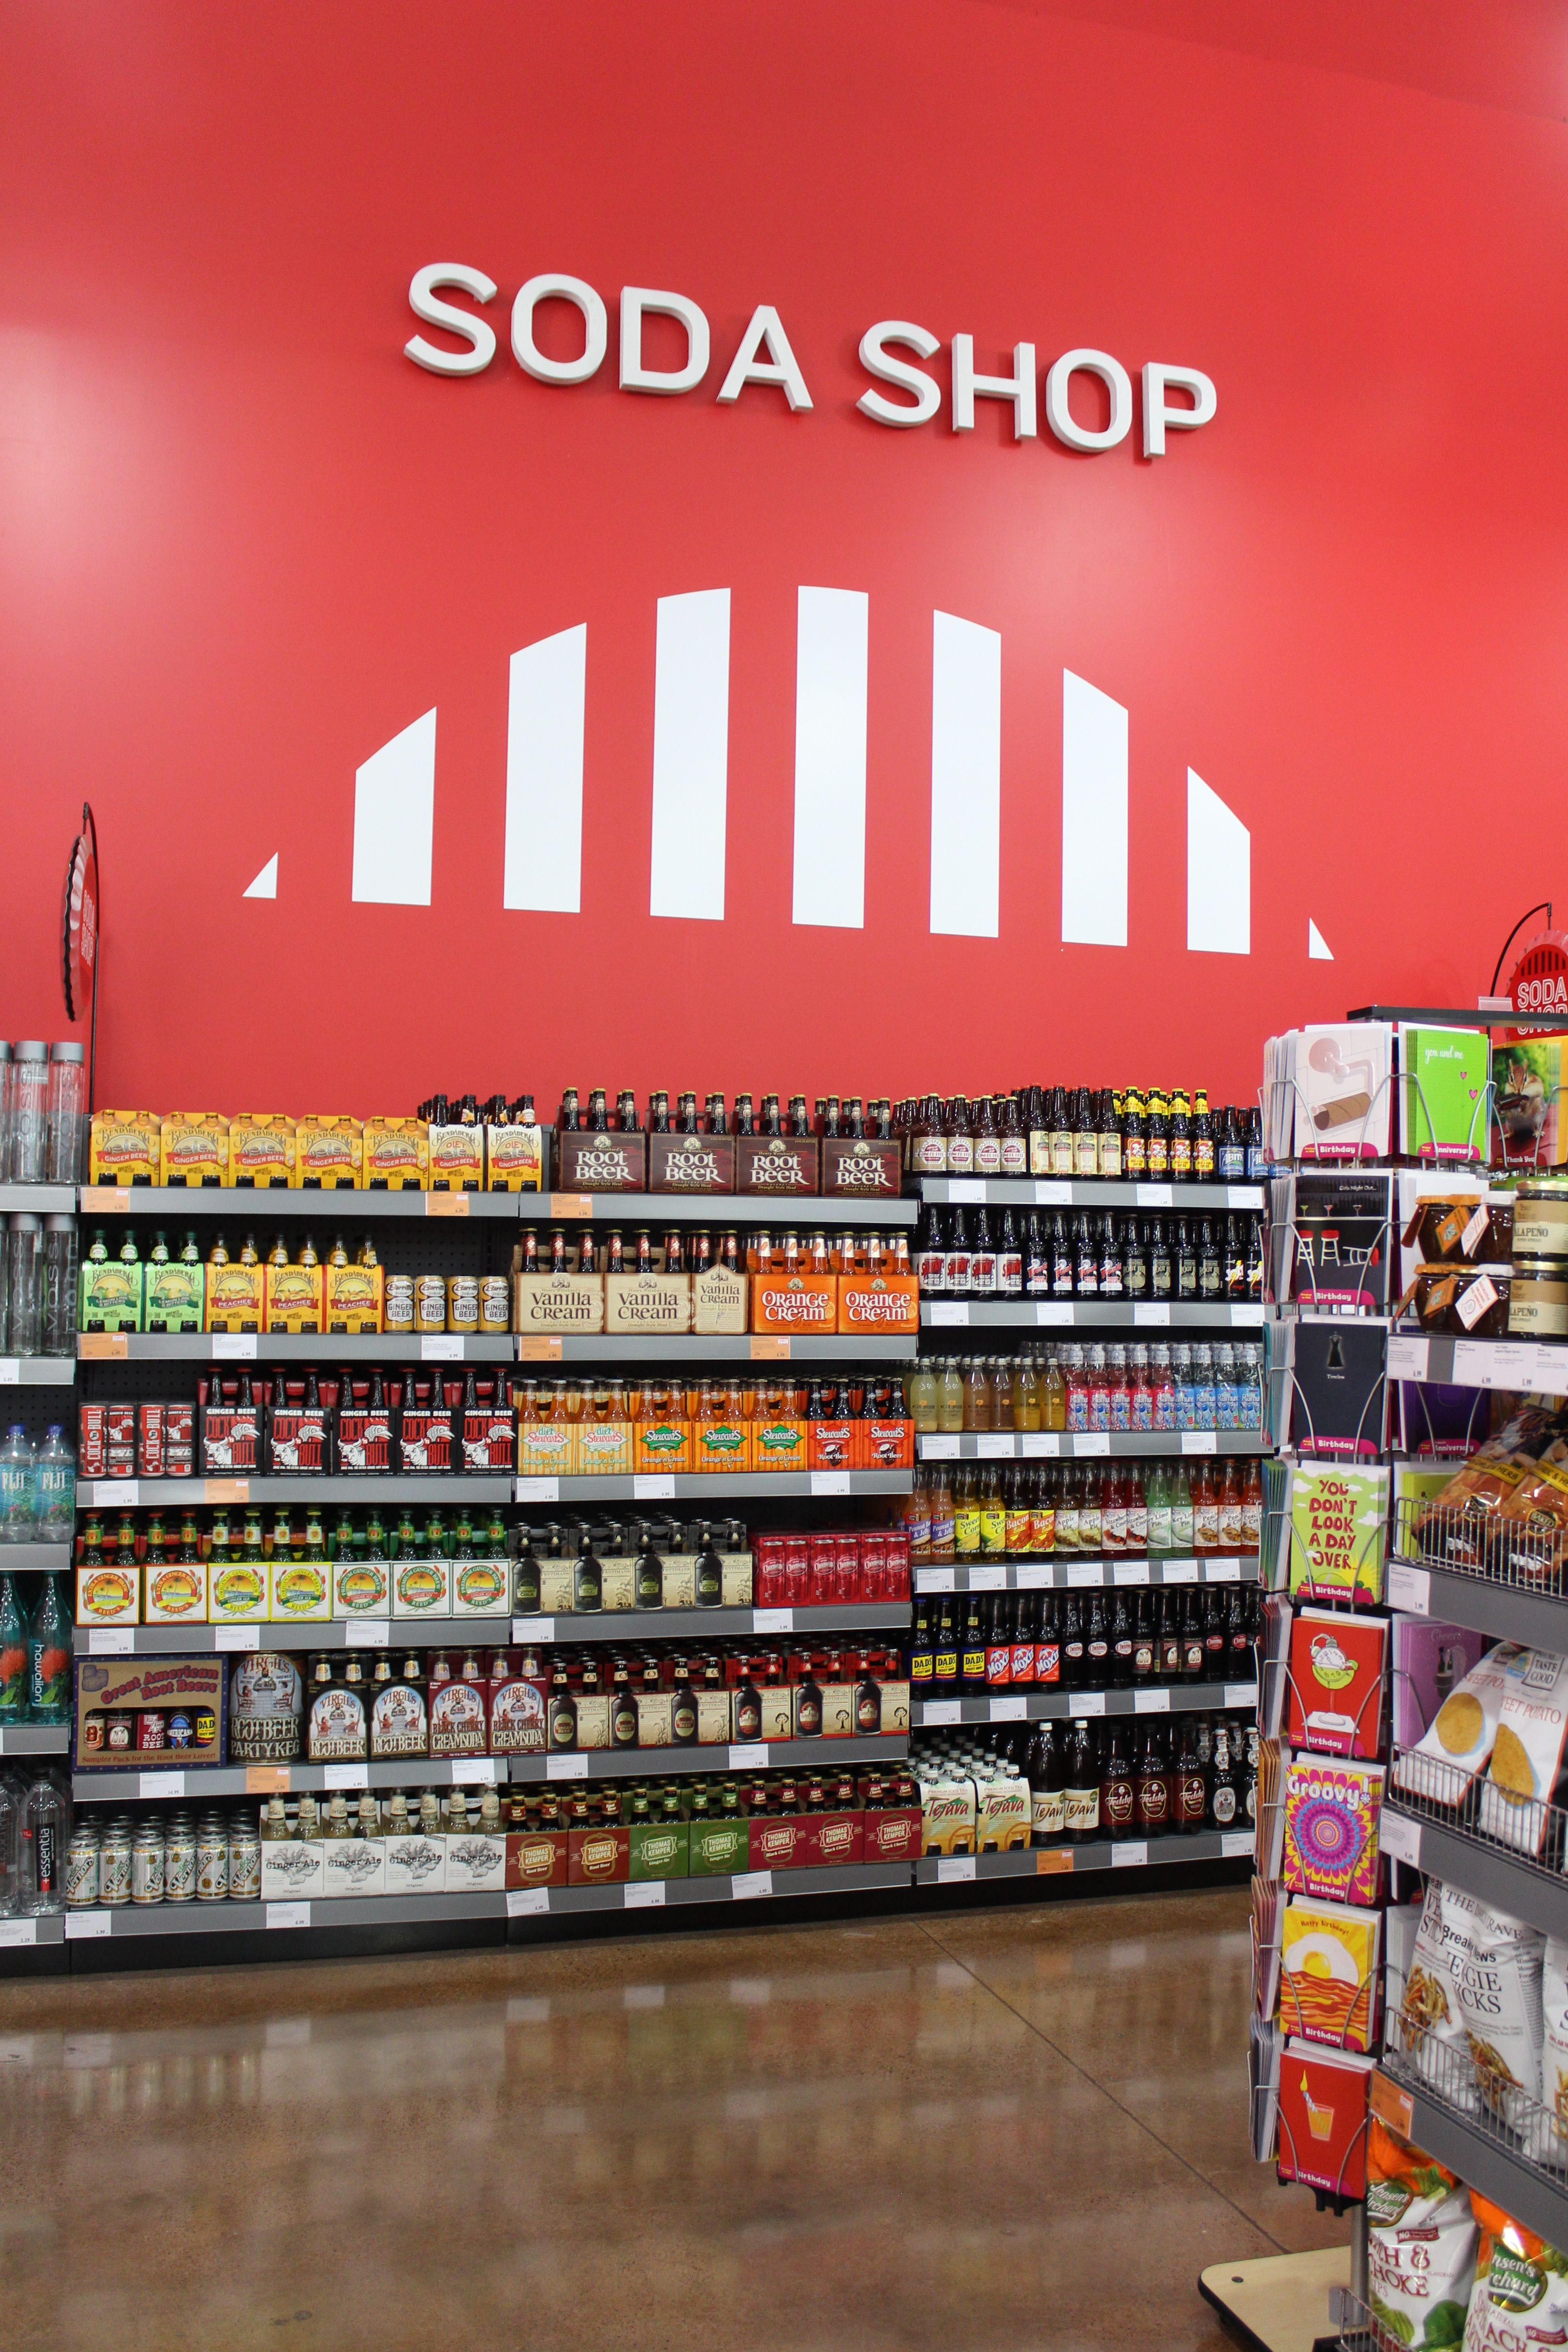 Looking For A Unique Soda Check Out Our Soda Shop Bevmo Wine And Liquor Store Buy Wine Online